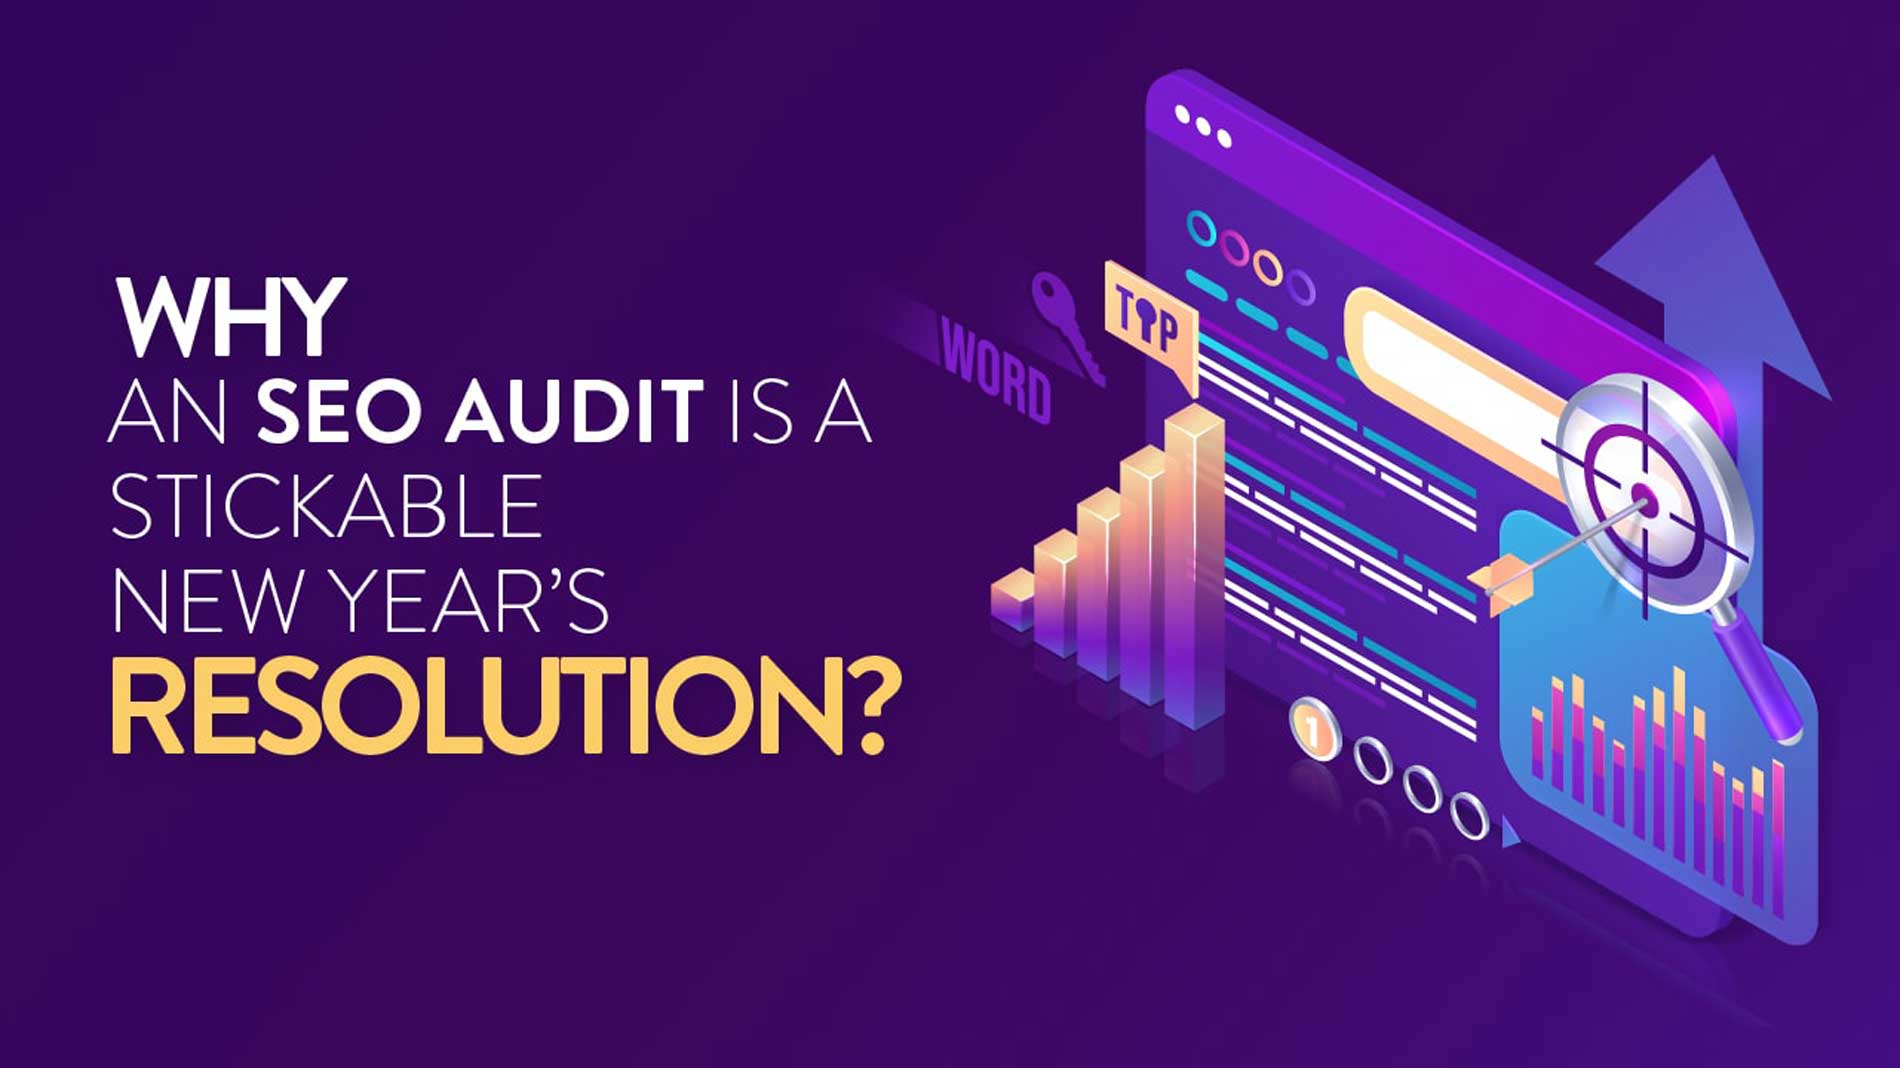 Why an SEO audit is NY resolution.